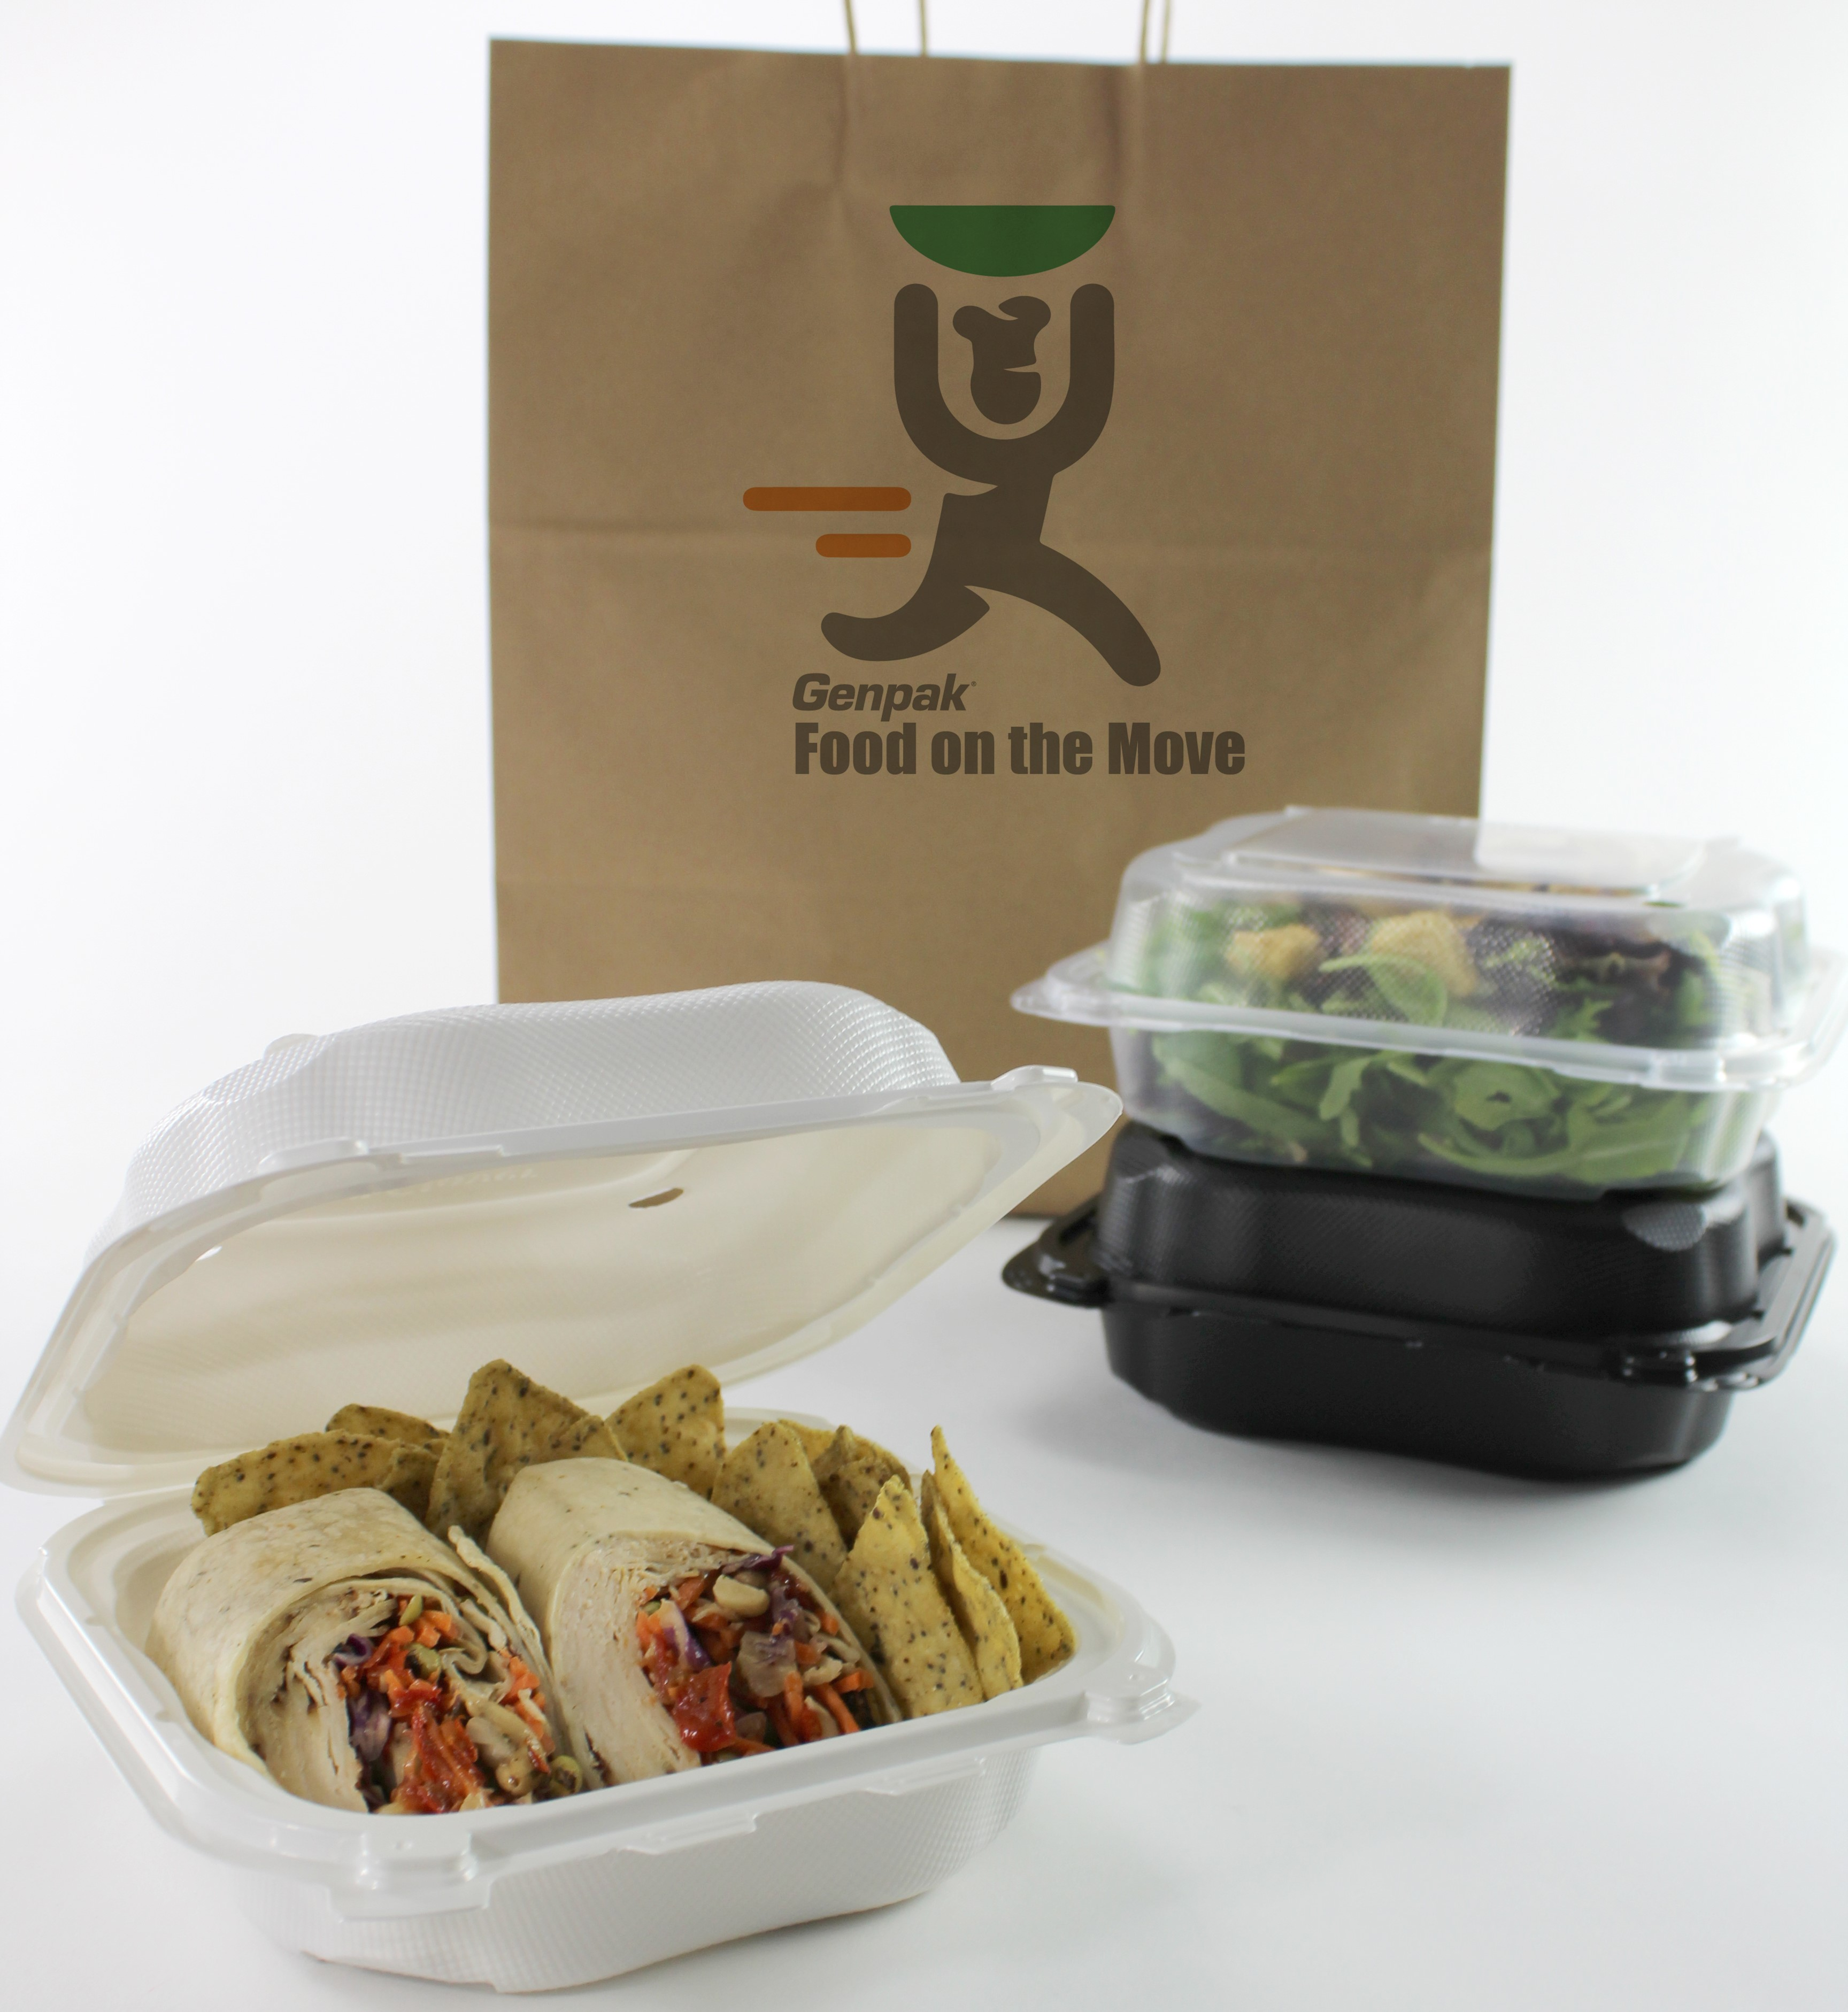 hinged containers with food in them next to delivery/takeout bag